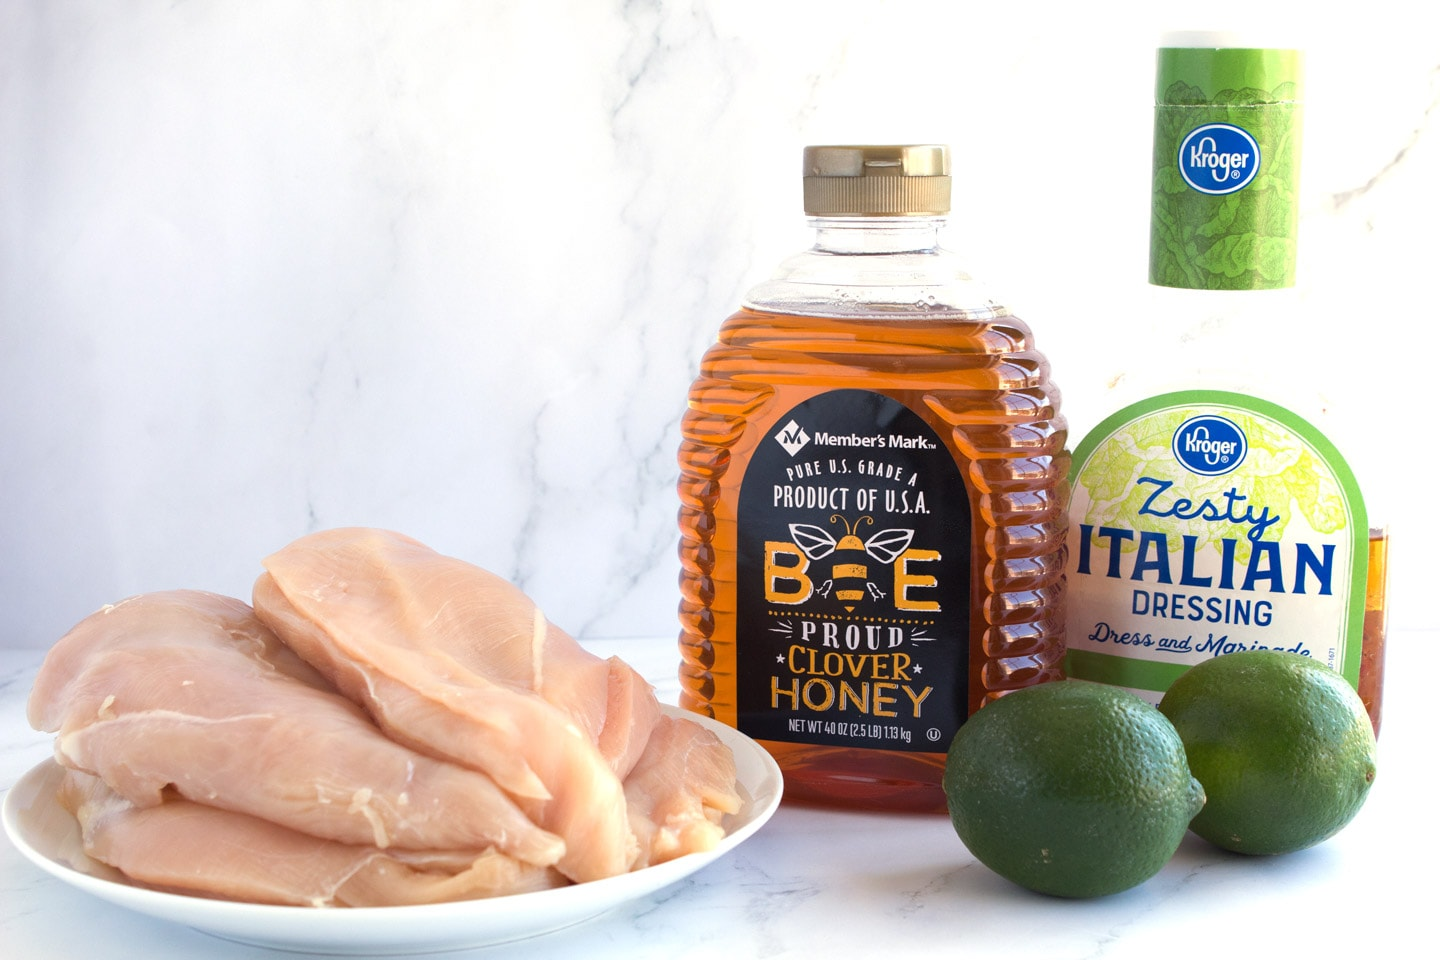 Ingredients for Sweet and Zesty Grilled Chicken Marinade